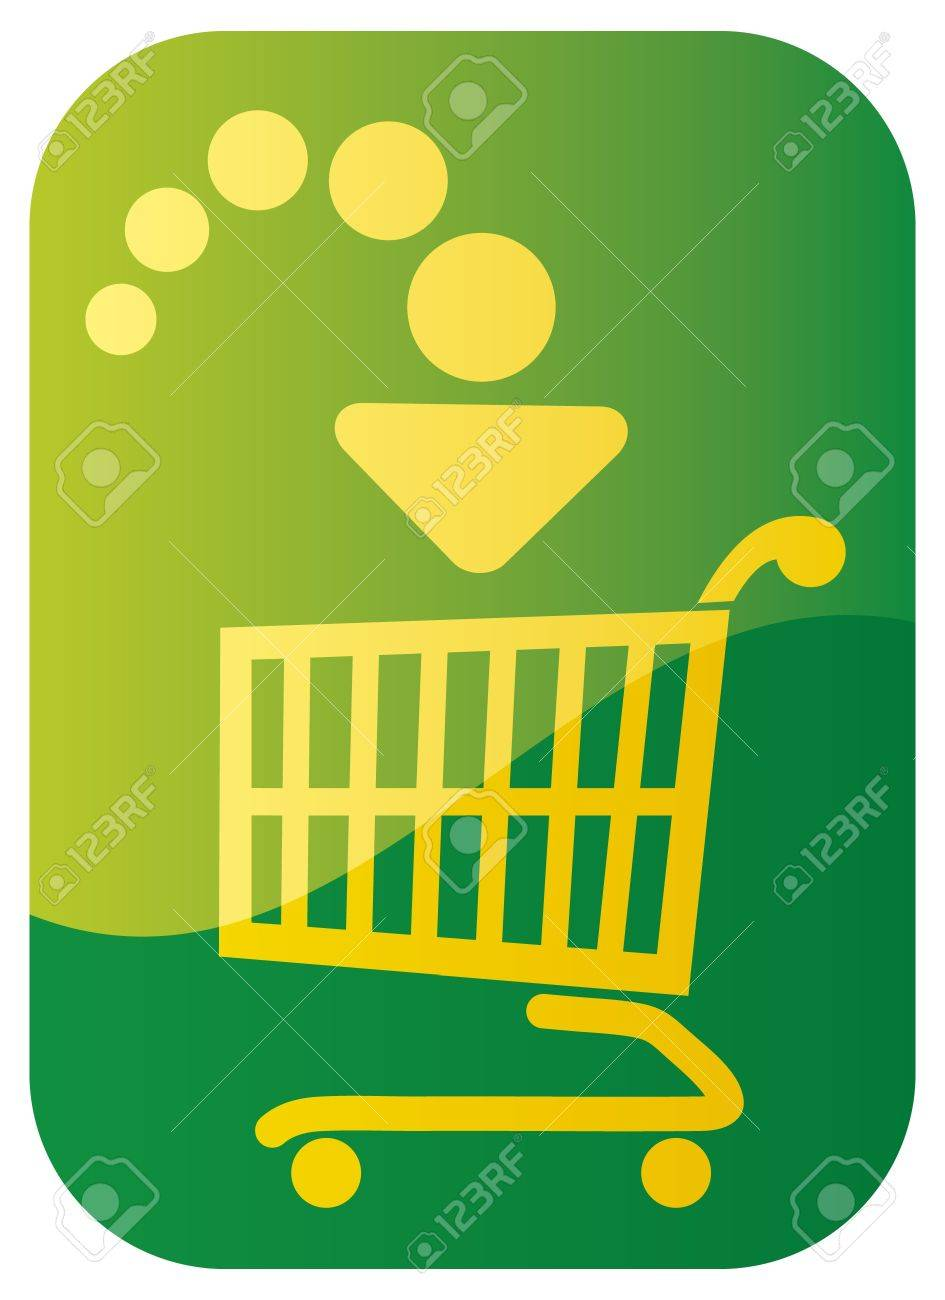 Add to cart button Stock Vector - 15227326